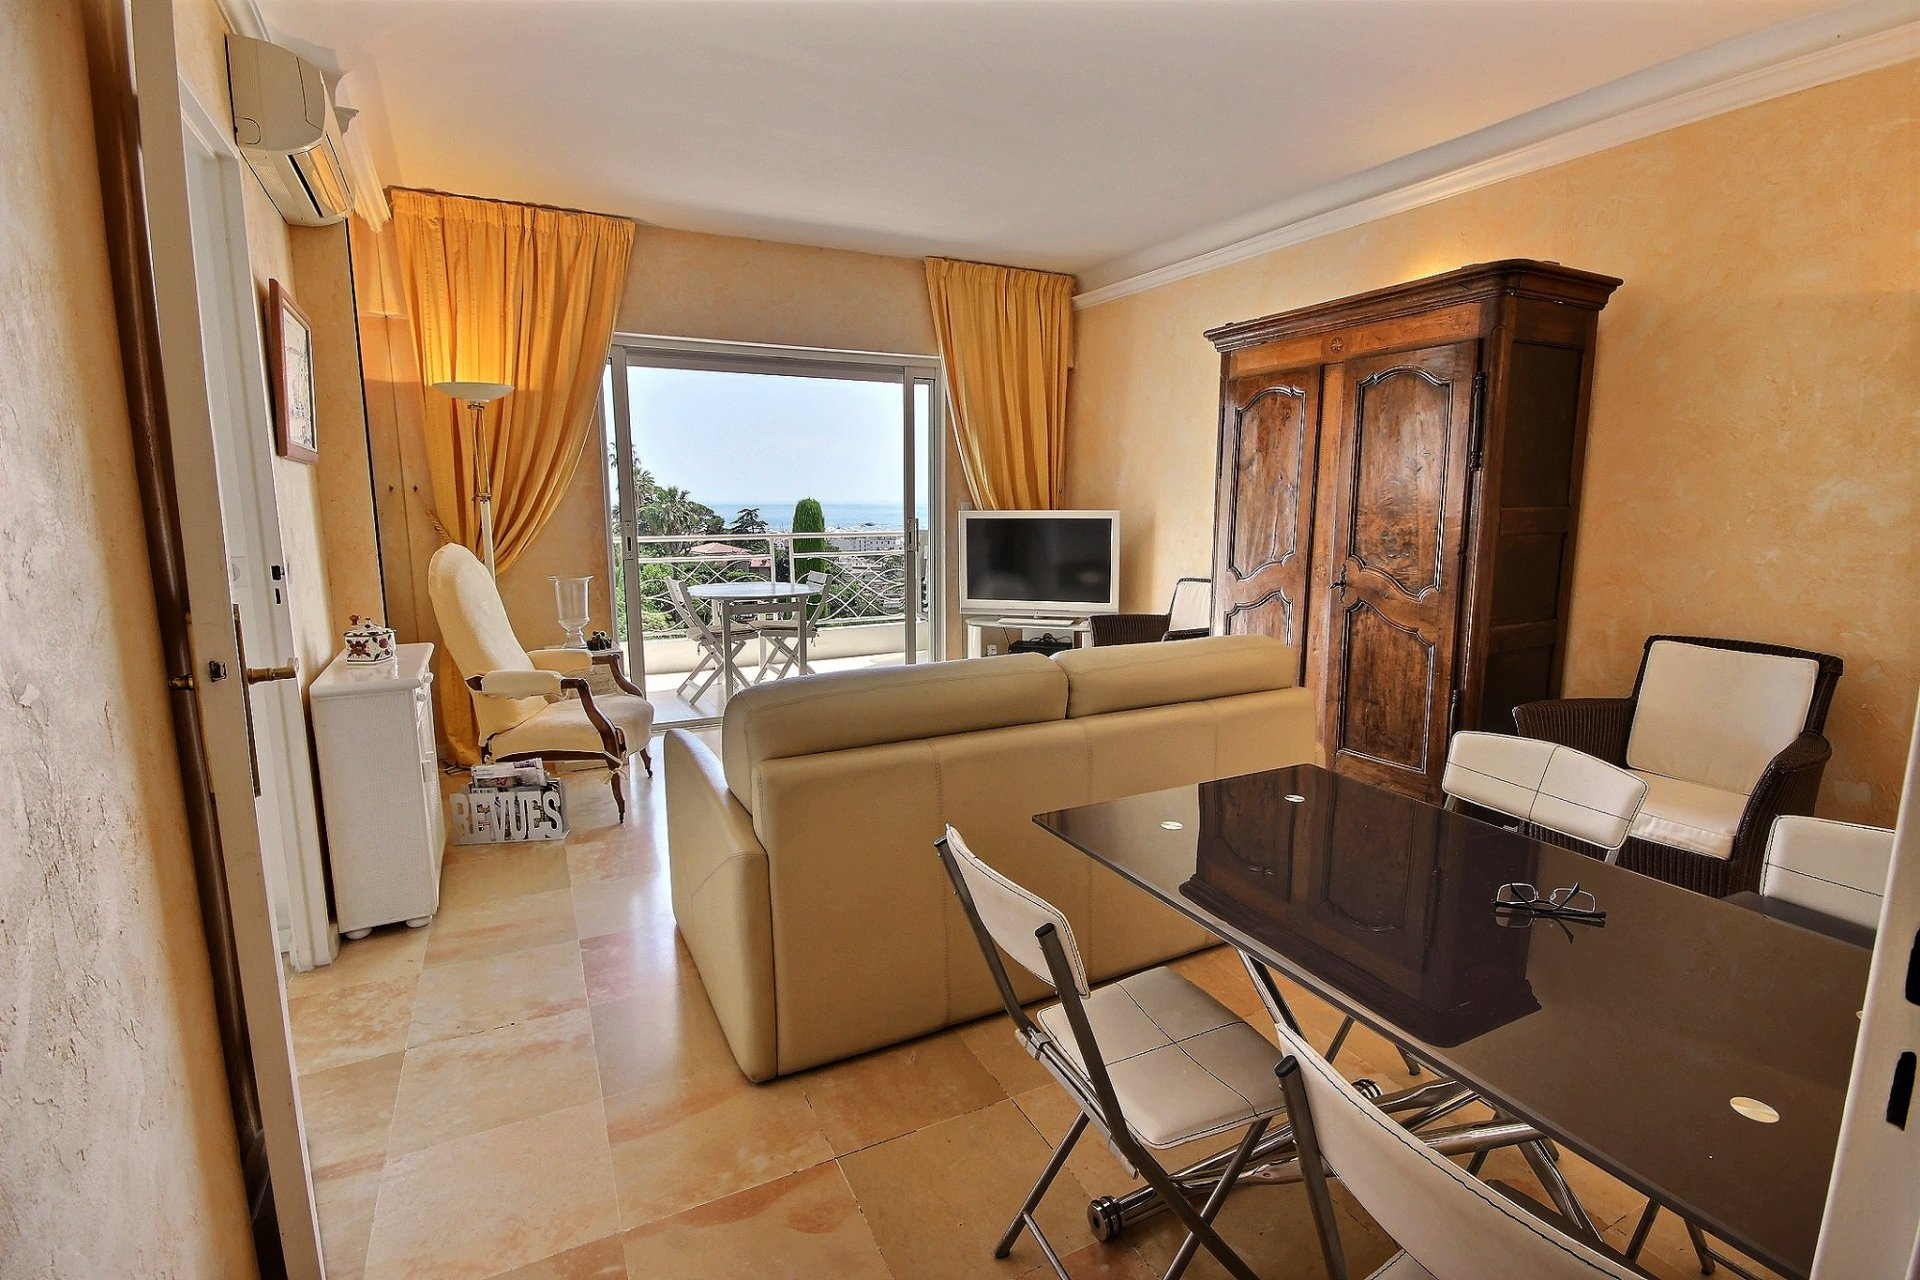 Cannes property for sale with swimming pool and sea view living room